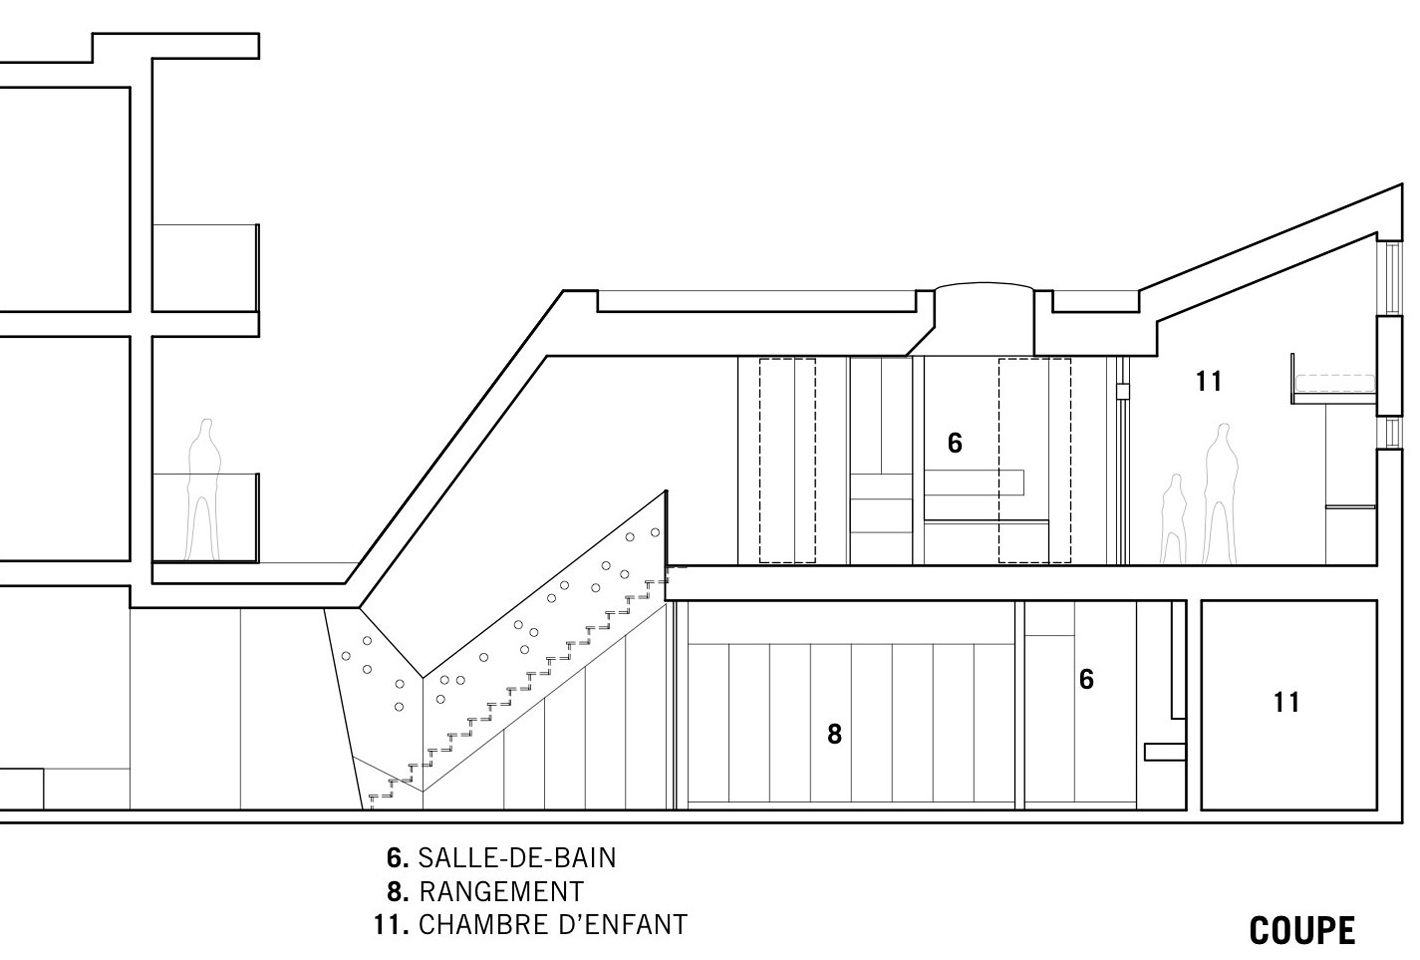 Section, Contemporary Extension in Rosemont-Petite-Patrie, Canada